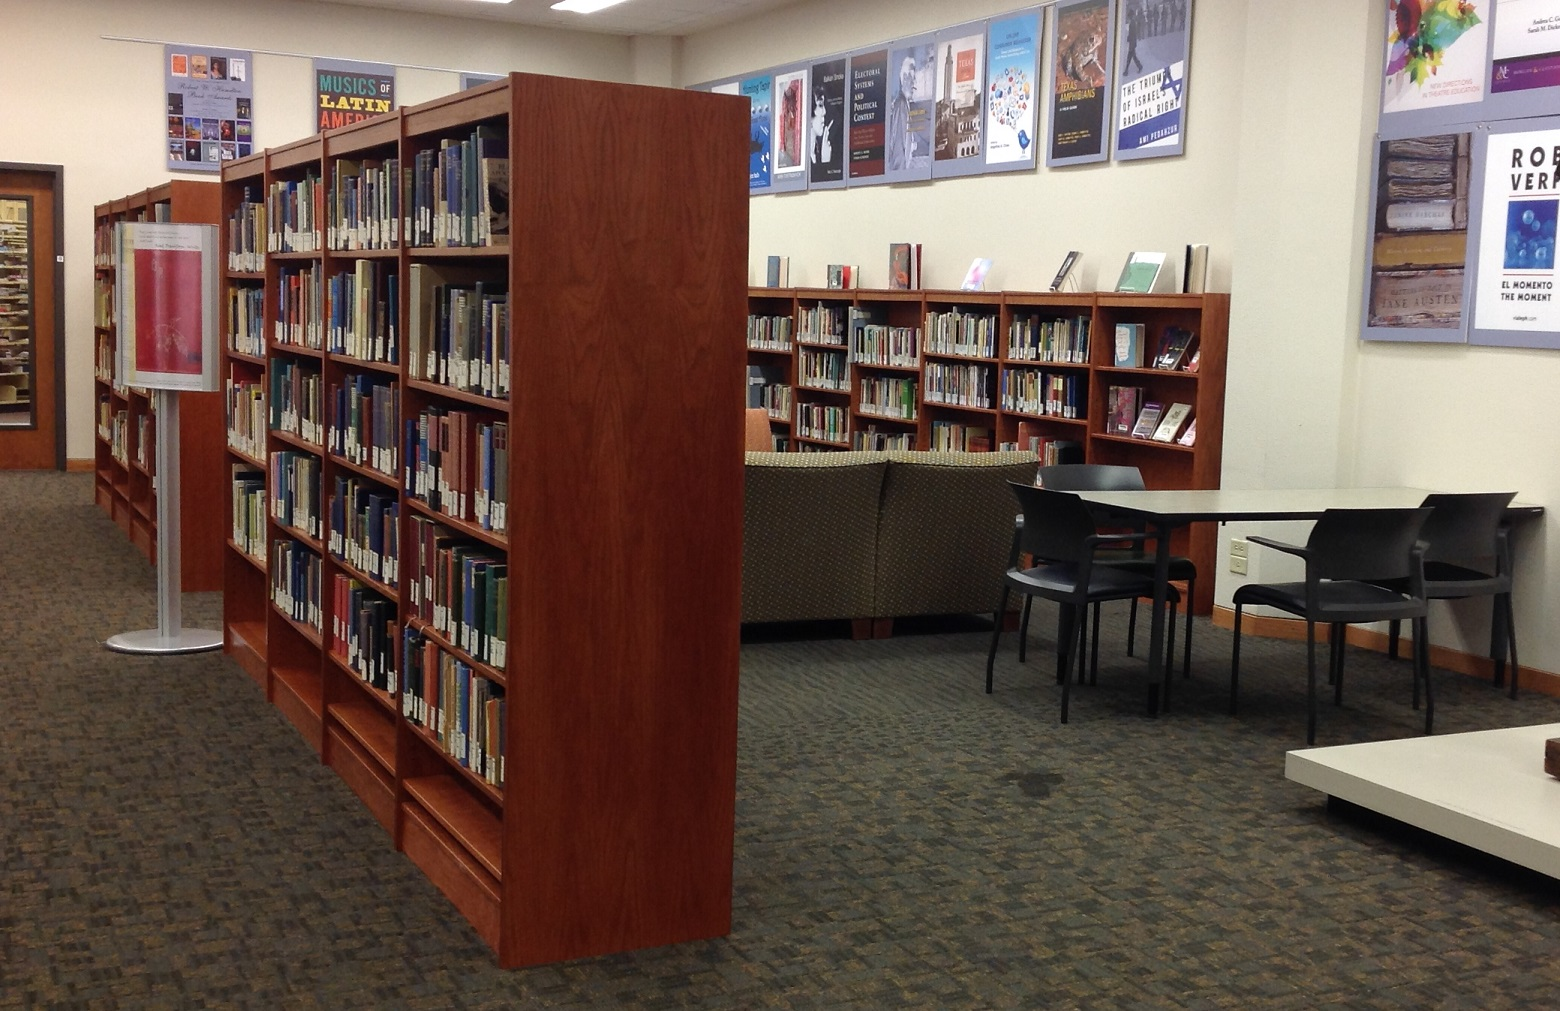 Image of the UT Poetry Center in the Perry-Castaneda's UFCU room. A group of bookshelves is in the forefront, with tables, chairs, couches, and more bookshelves in the background.